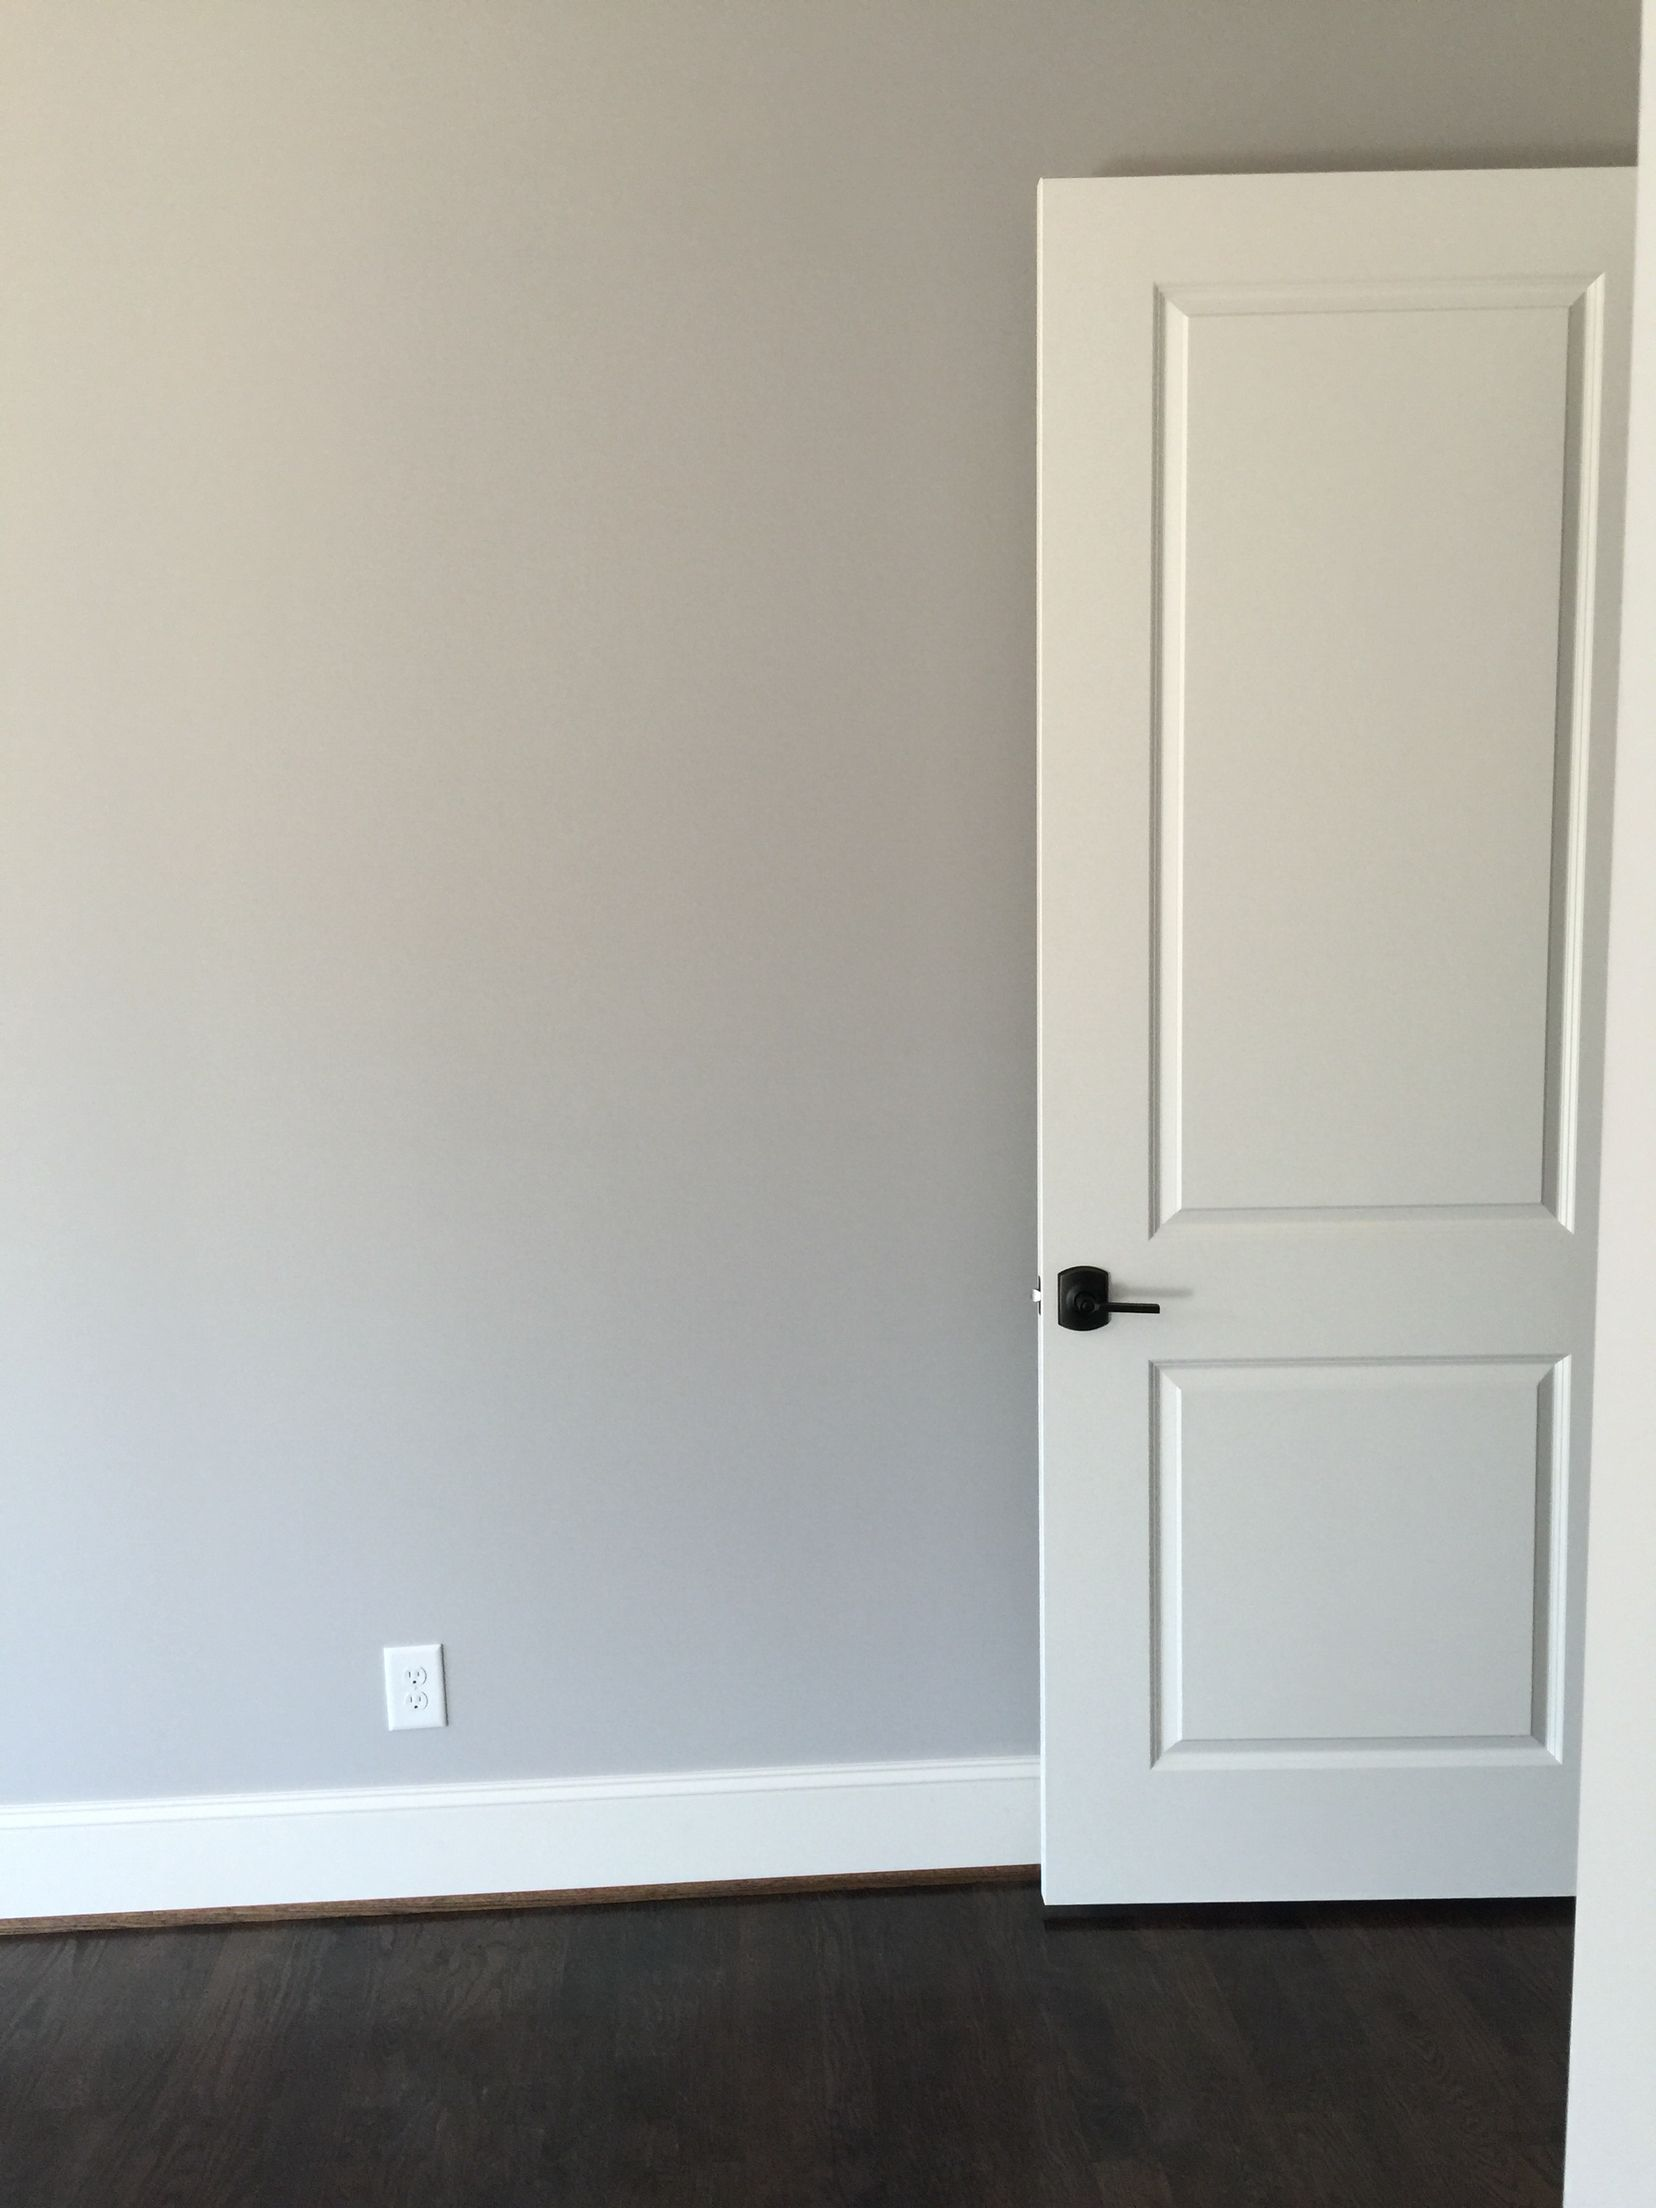 Sherwin Williams Knitting Needles Wall Color Alabaster Doors And